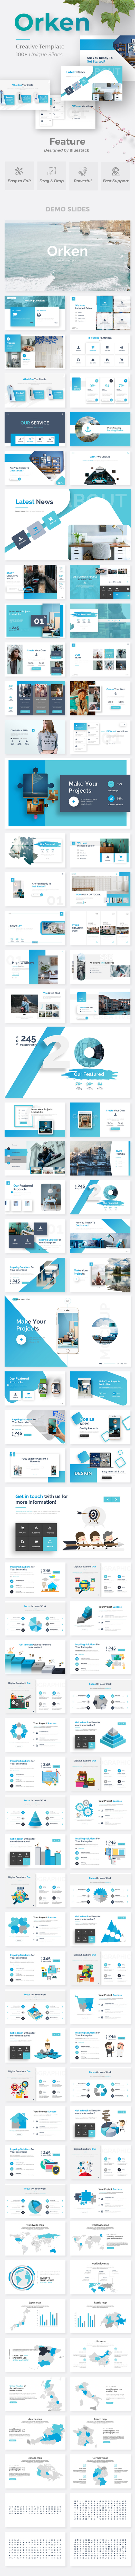 Orken Premium Design Google Slide Template - Google Slides Presentation Templates